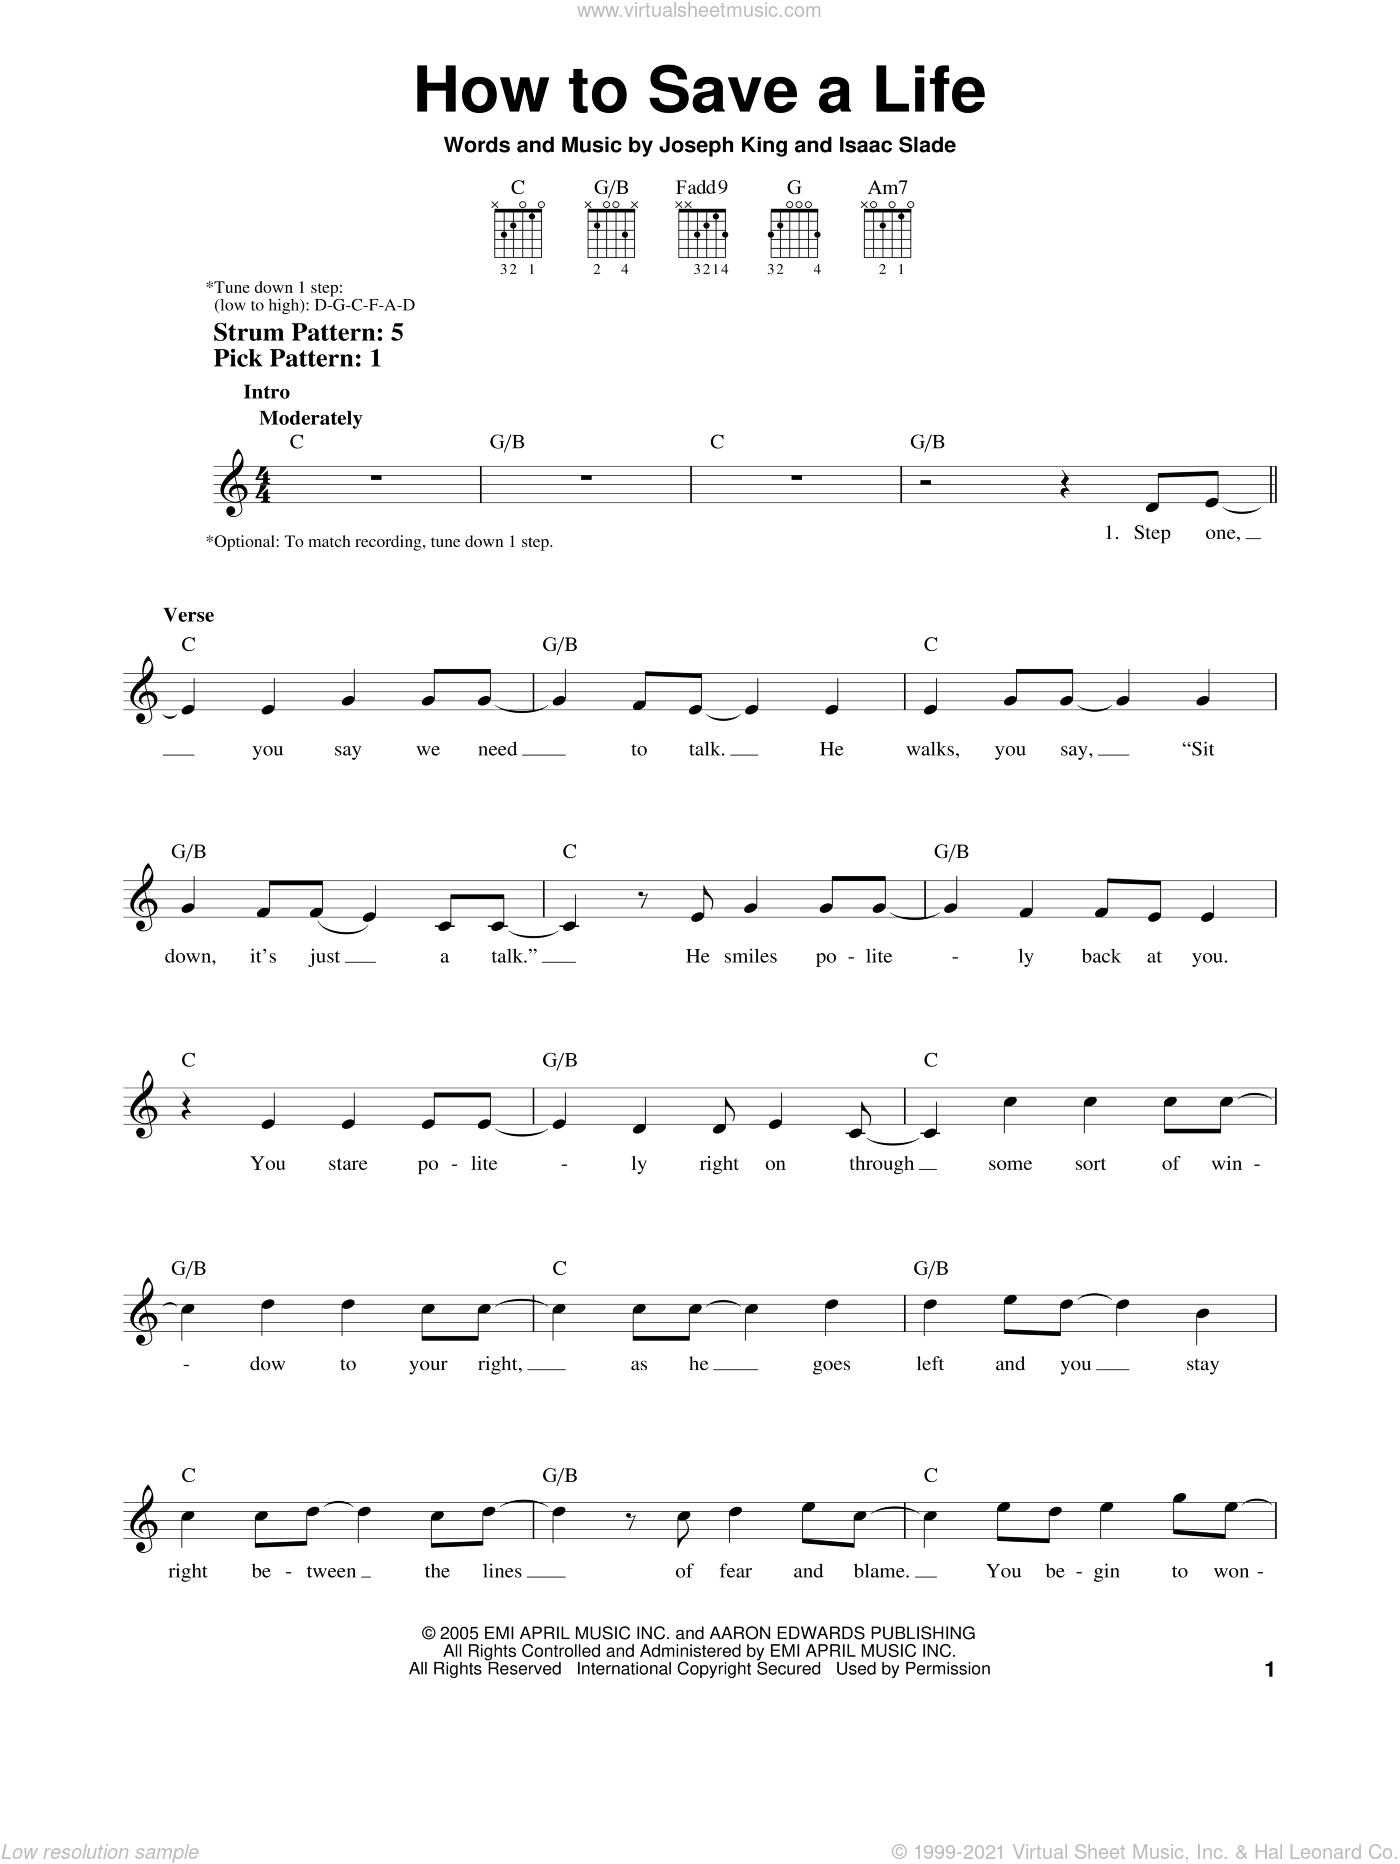 How To Save A Life sheet music for guitar solo (chords) by The Fray, Isaac Slade and Joseph King, easy guitar (chords)